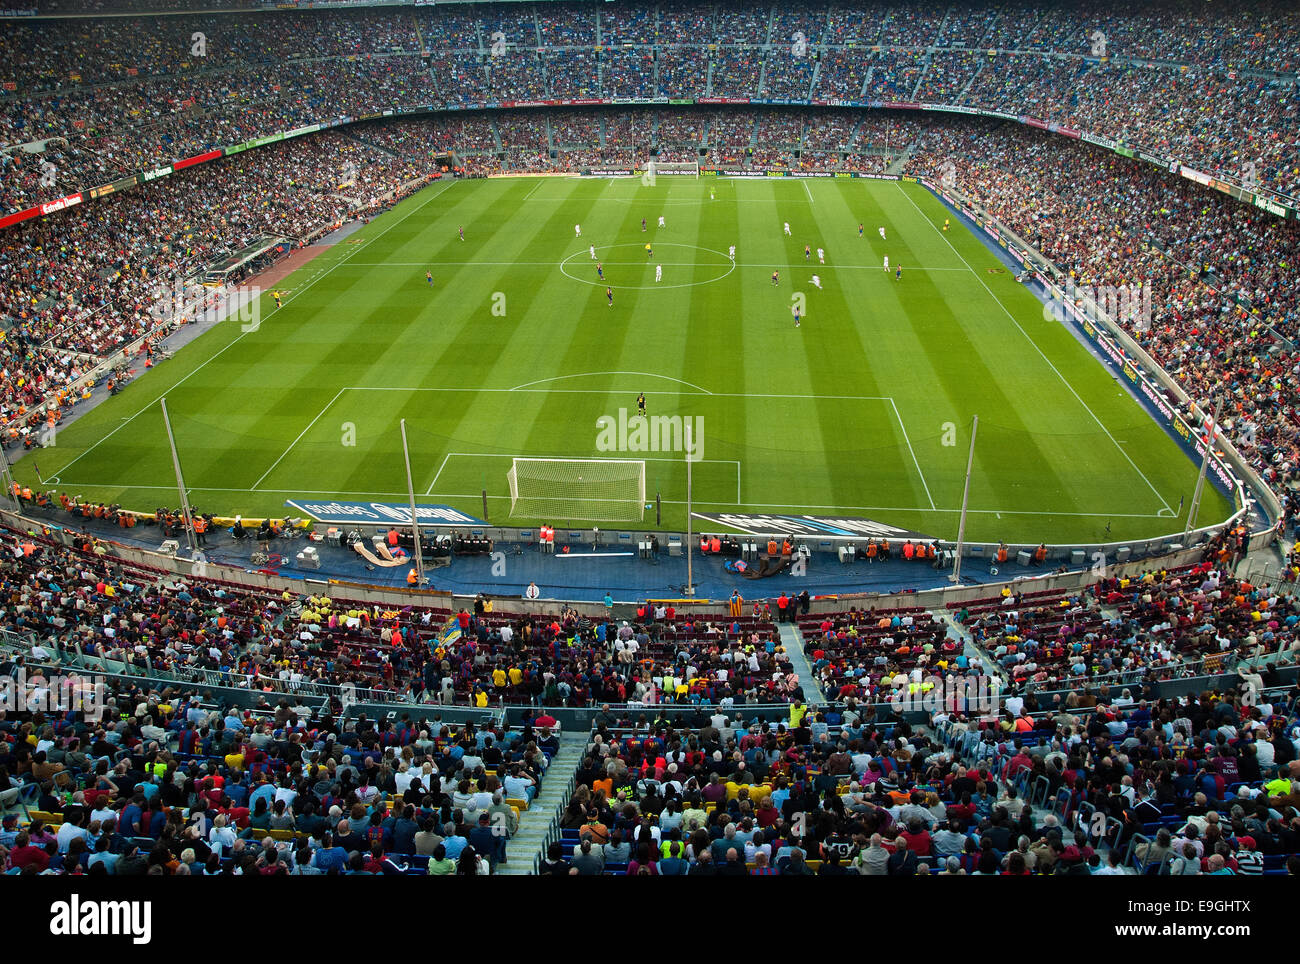 BARCELONA - MAY 23: Camp Nou Stadium on May 23, 2009 in Barcelona, Spain. - Stock Image